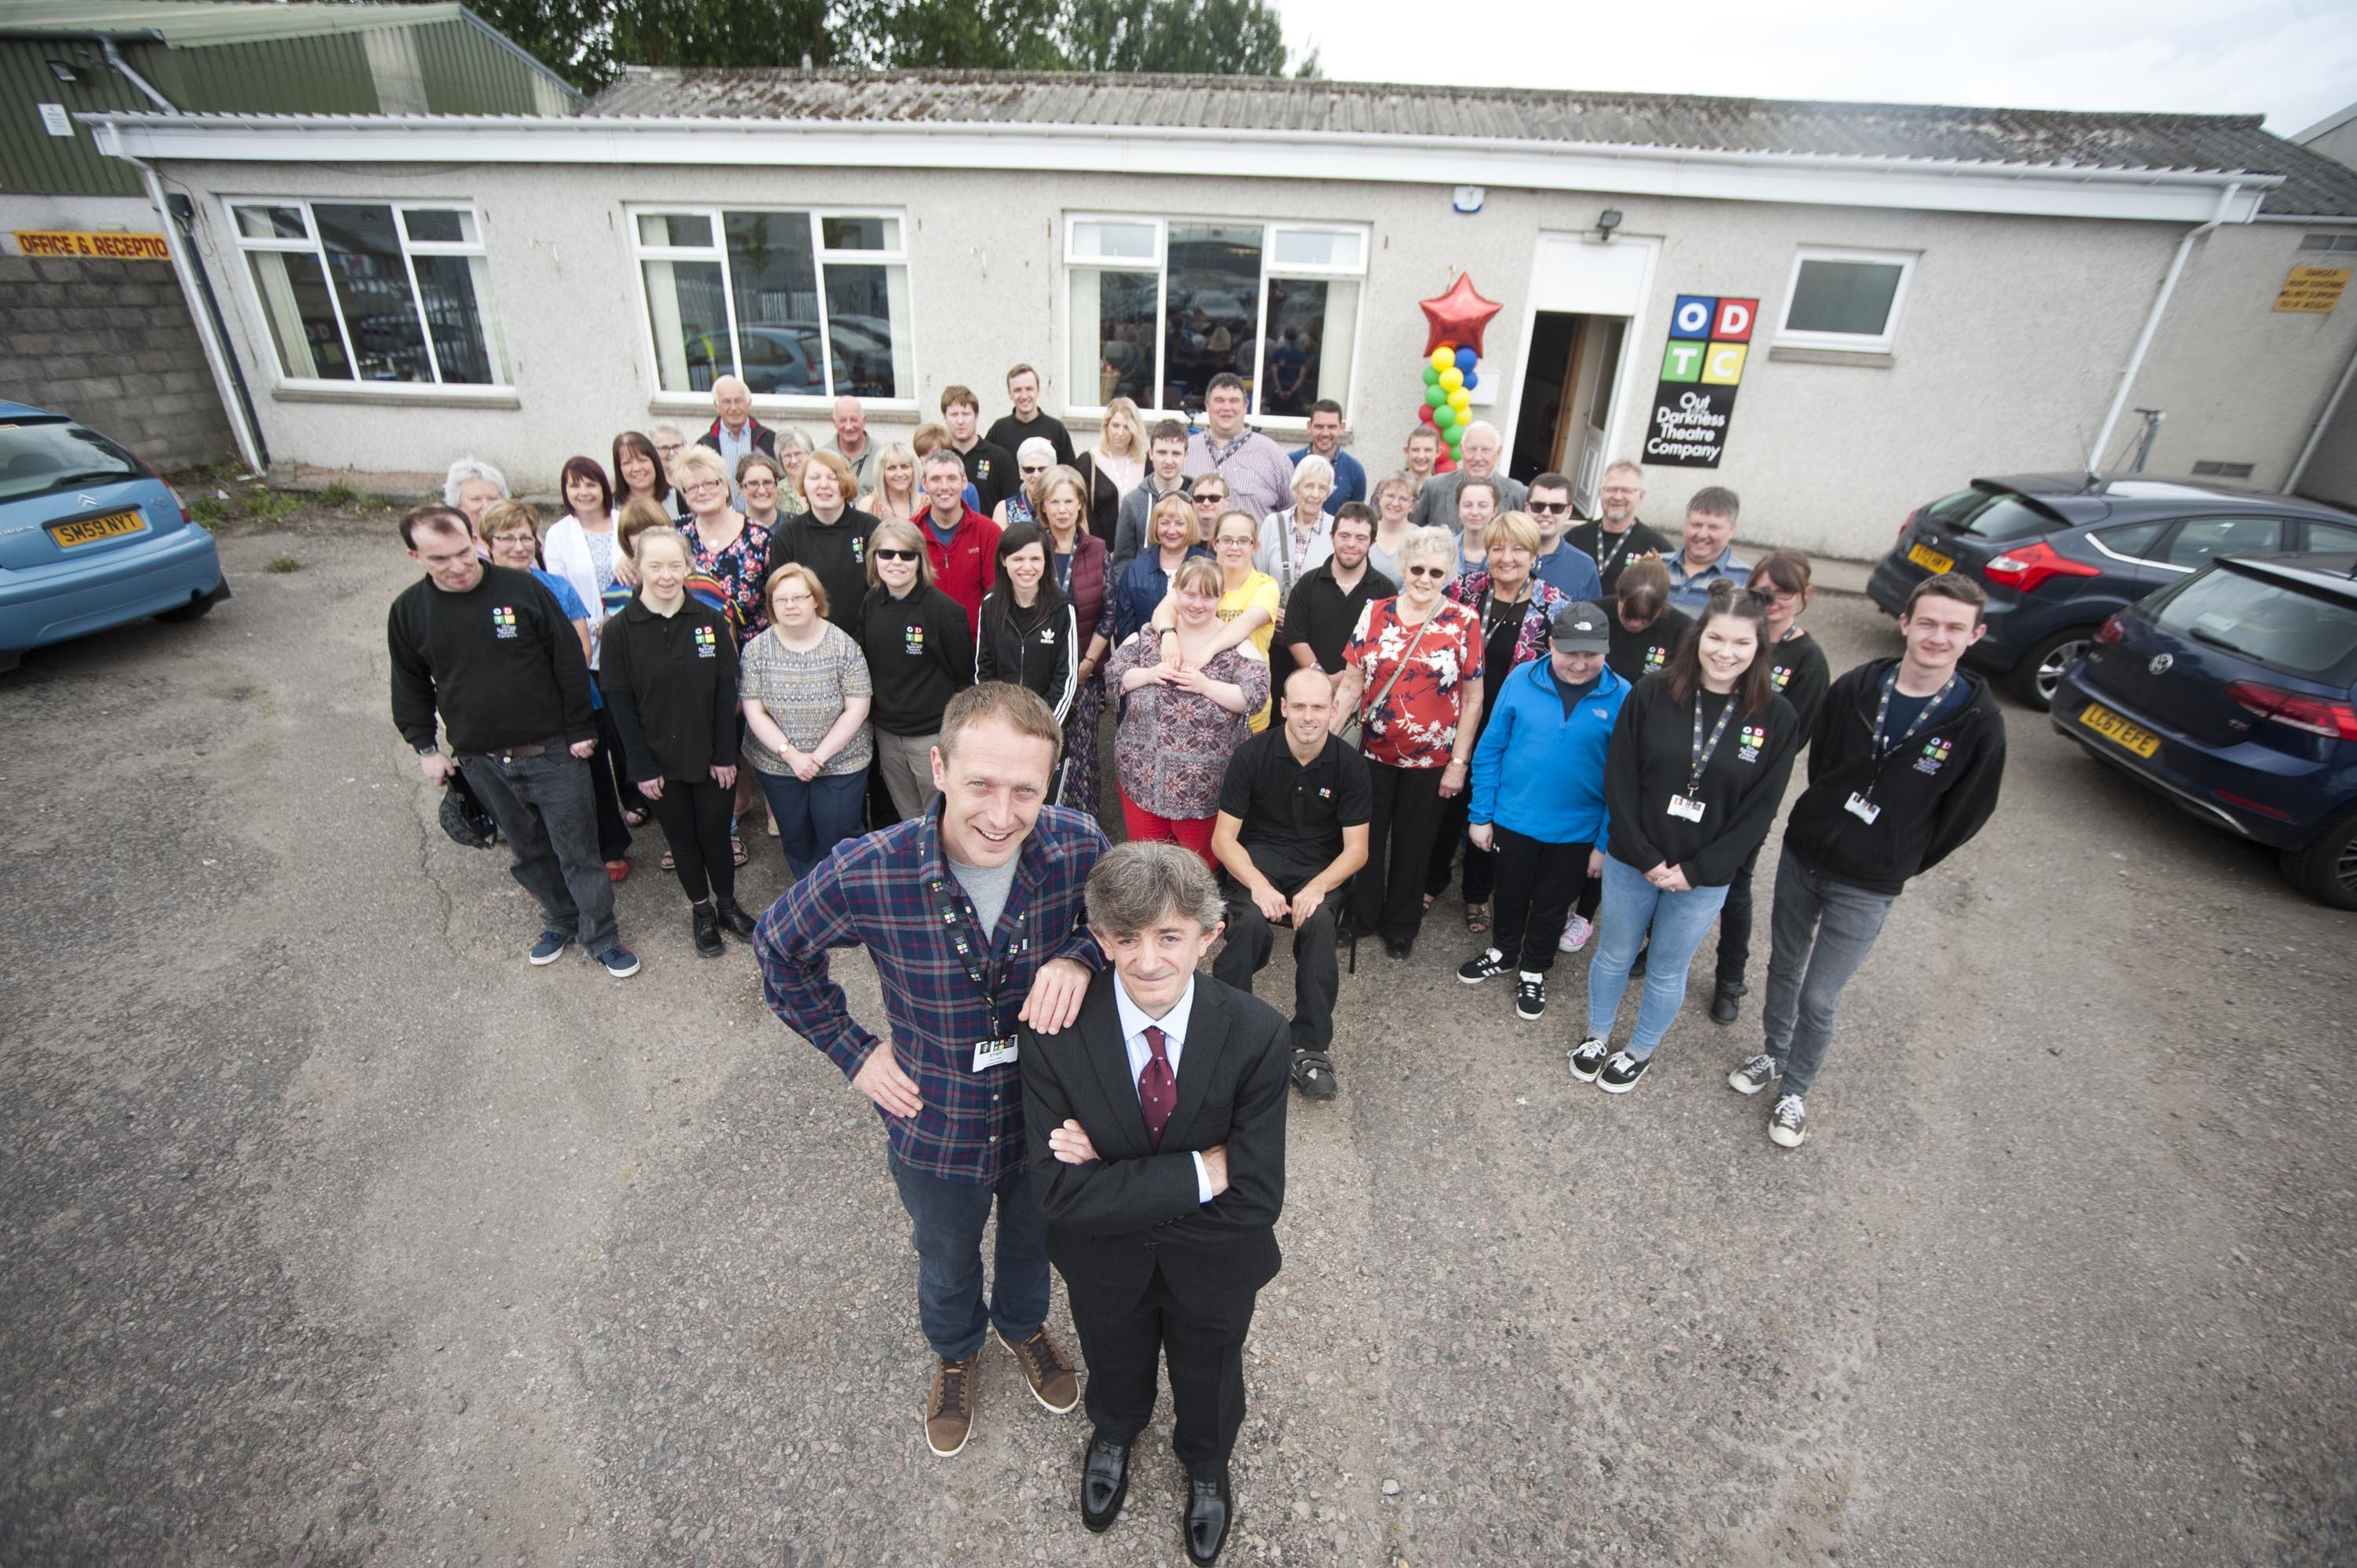 Out of the Darkness Theatre Company in Elgin celebrate opening their new premises.